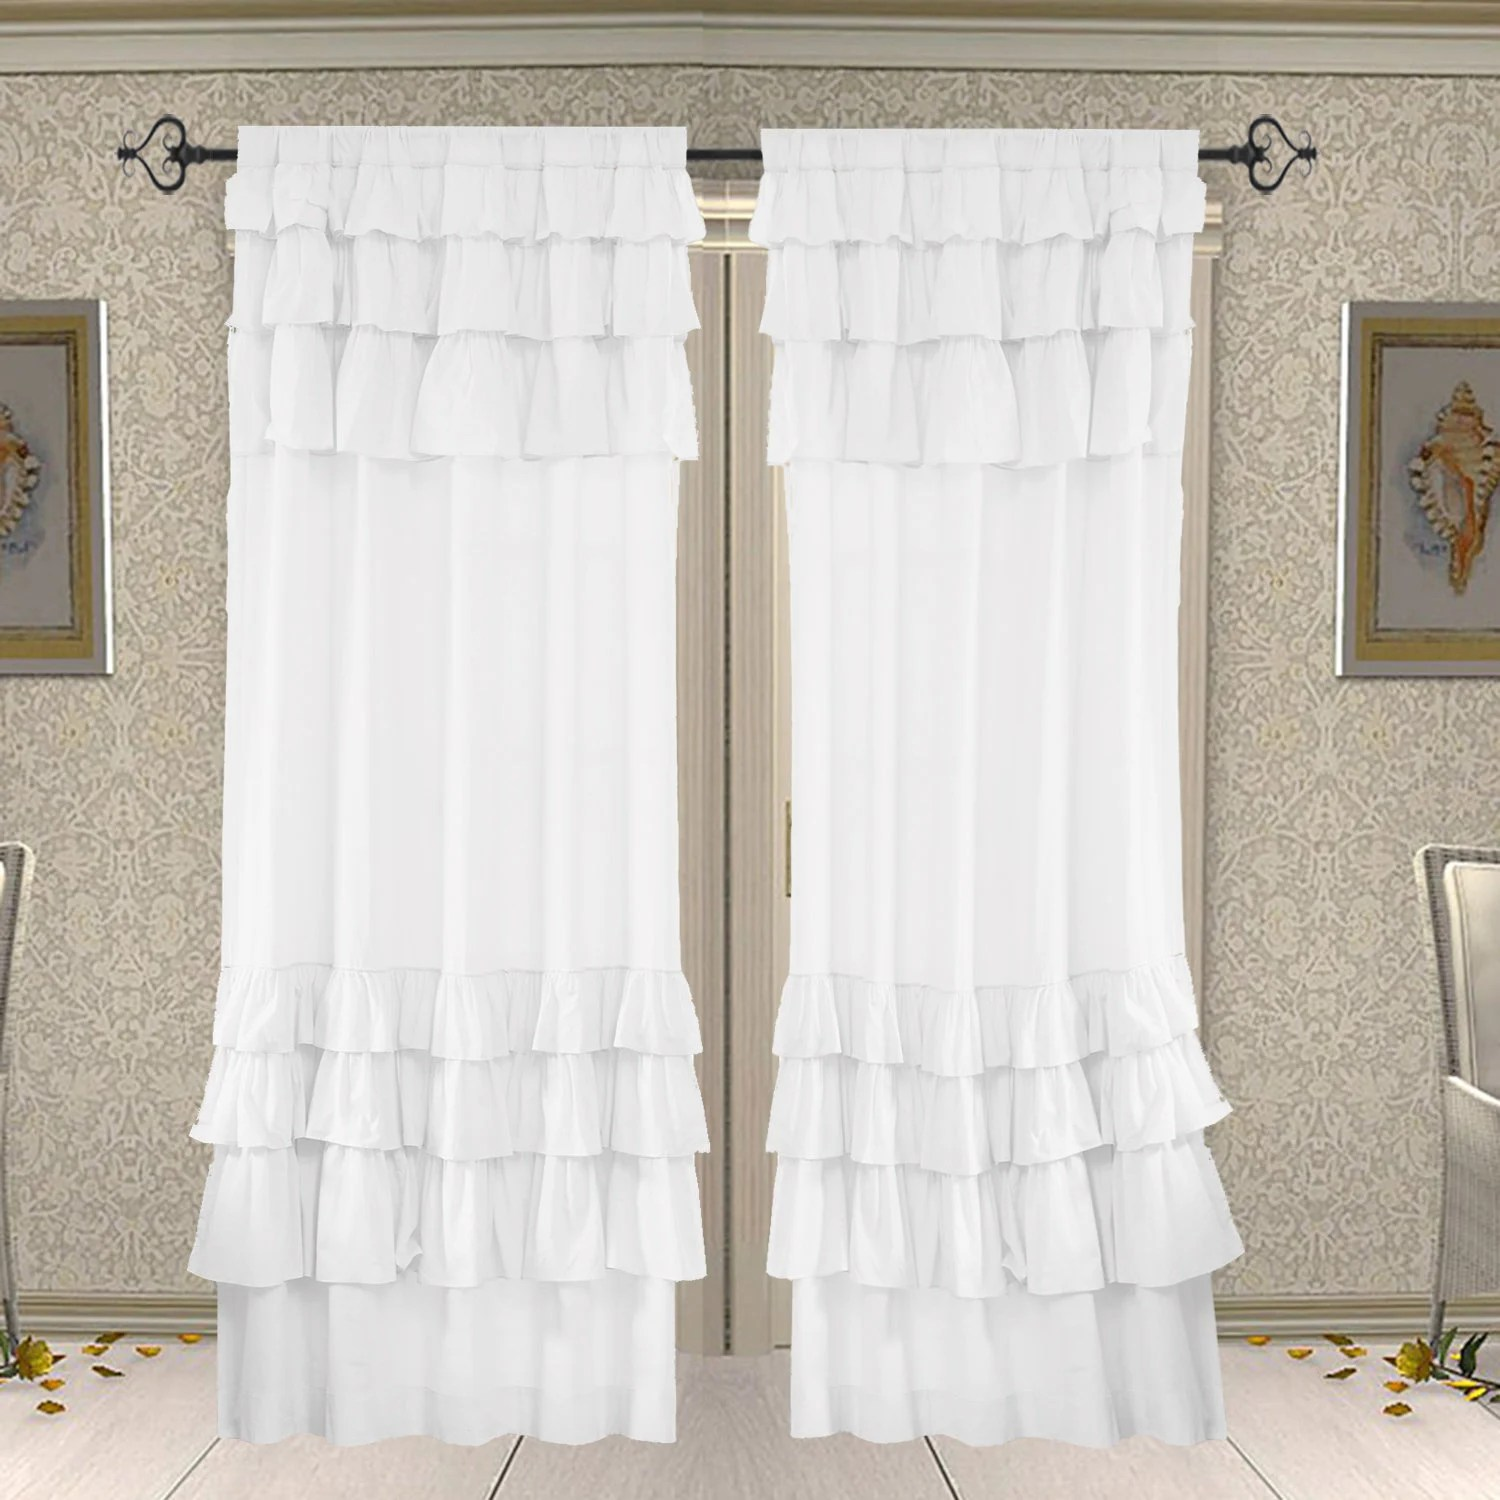 Cotton Curtain Panels 2 Pcs Window Ruffle Cotton Curtains Door Curtain Cotton Curtain Curtain Panels White Curtains